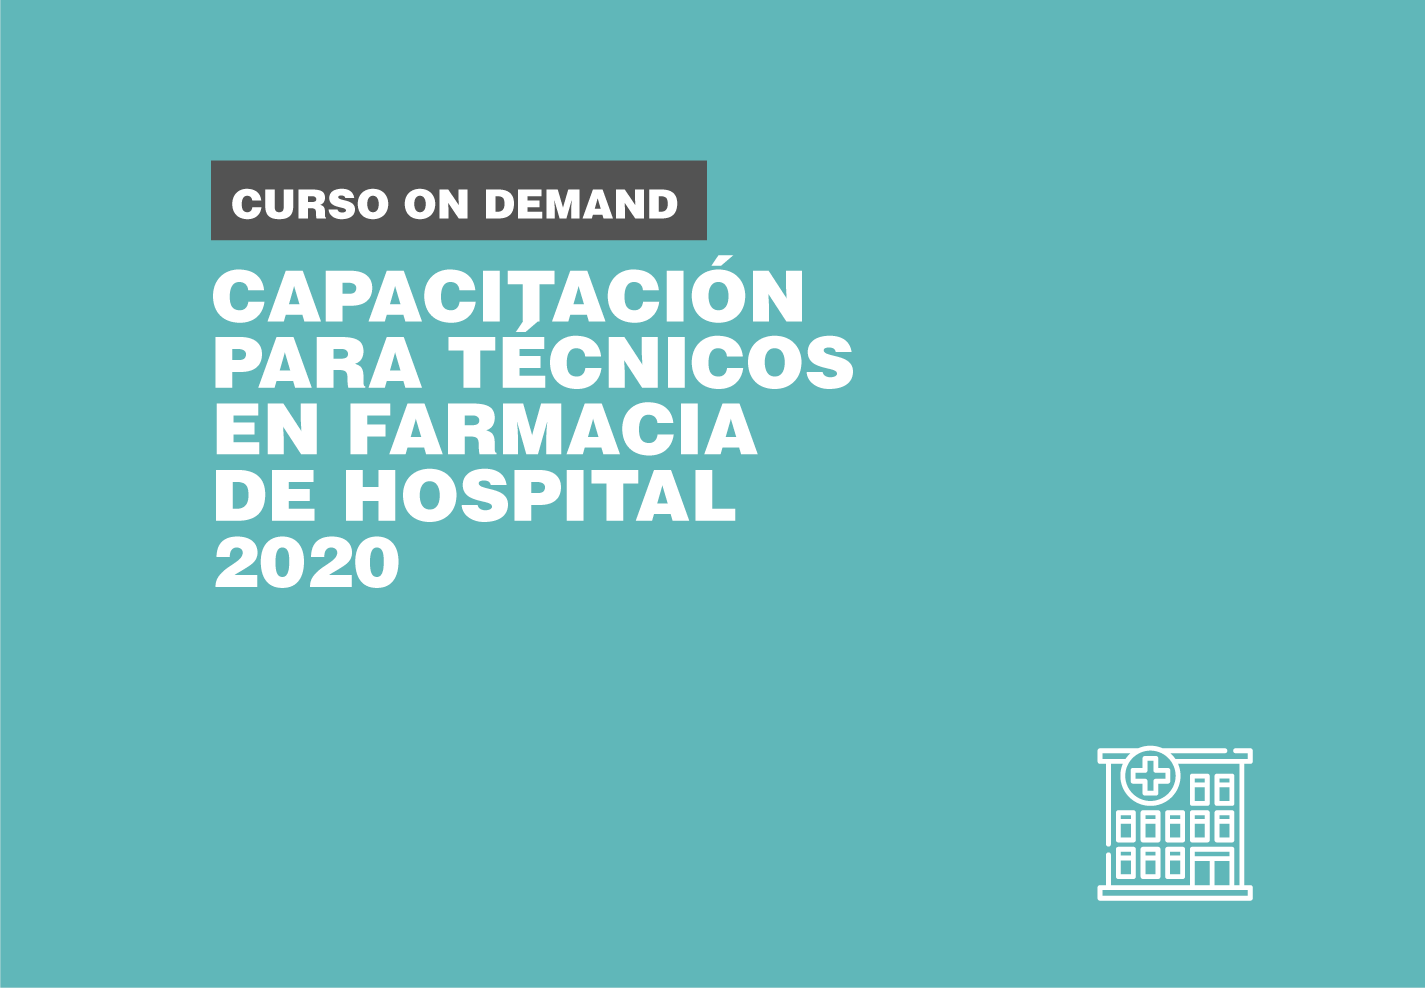 Curso ON DEMAND de Capacitación para Técnicos en Farmacia de Hospital 2020